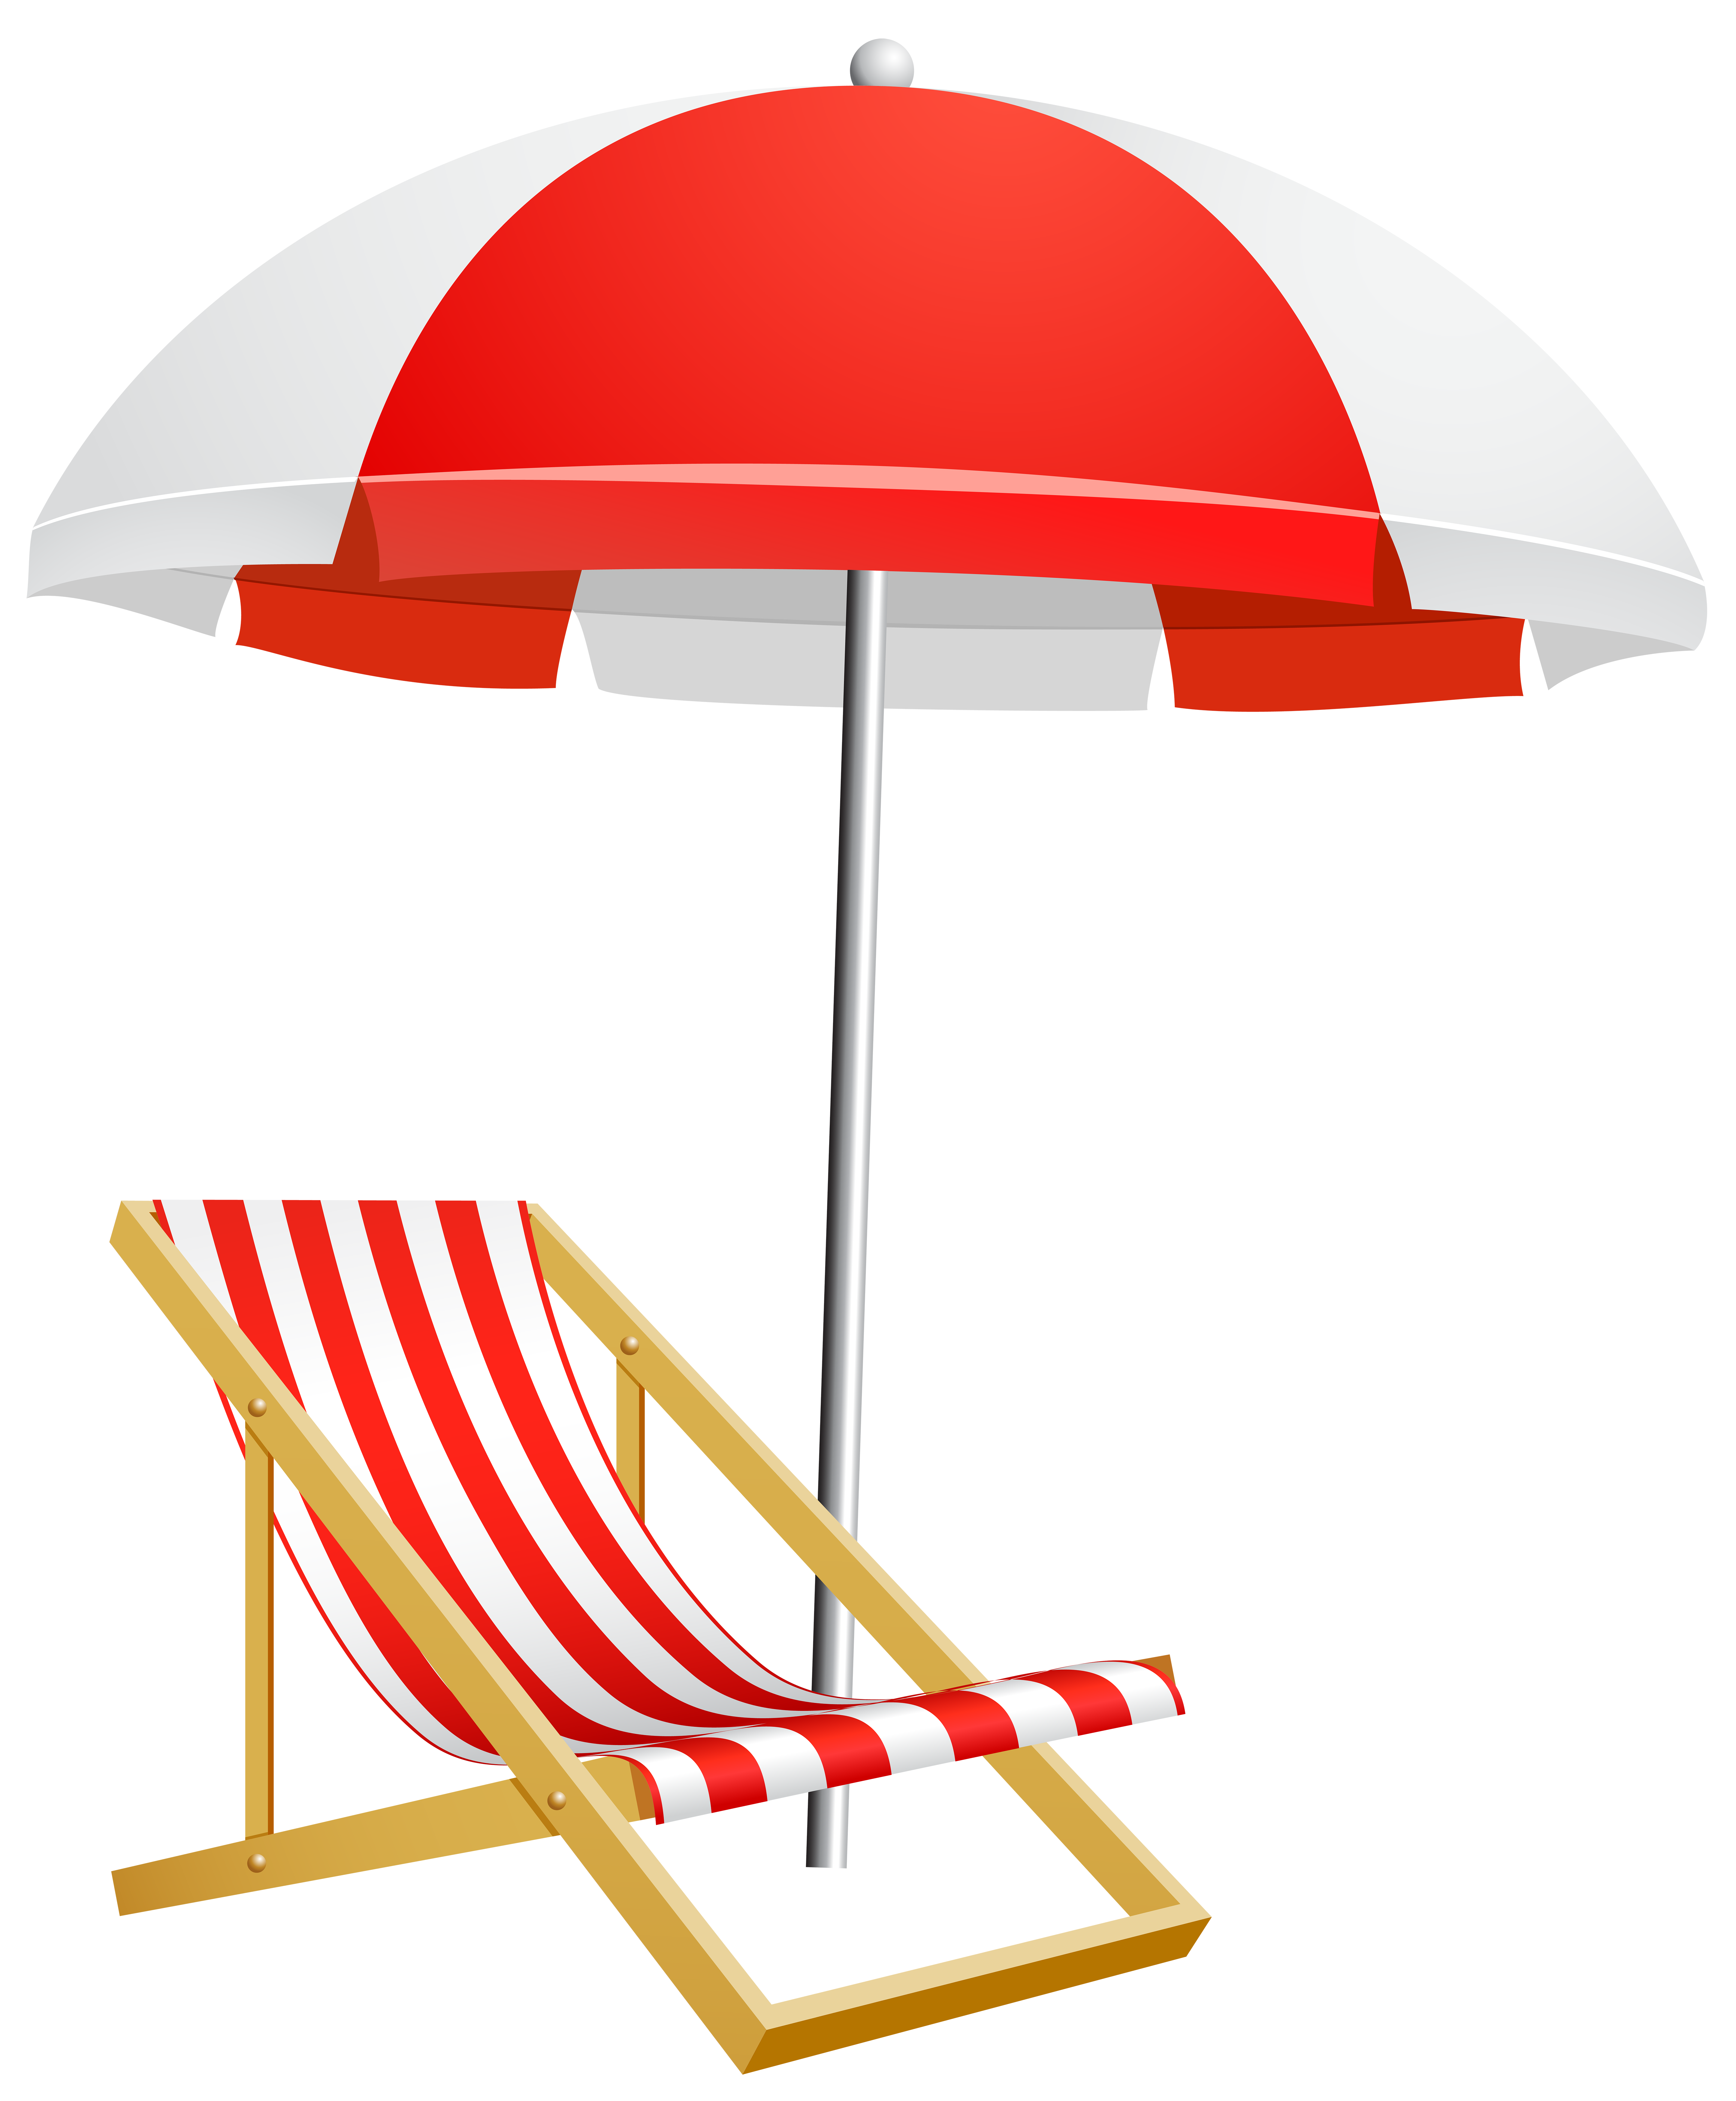 Beach Umbrella And Chair Transparent Png Clip Art Image Gallery Yopriceville High Quality Images Reupholster Chair Diy Diy Hammock Chair Diy Hanging Chair